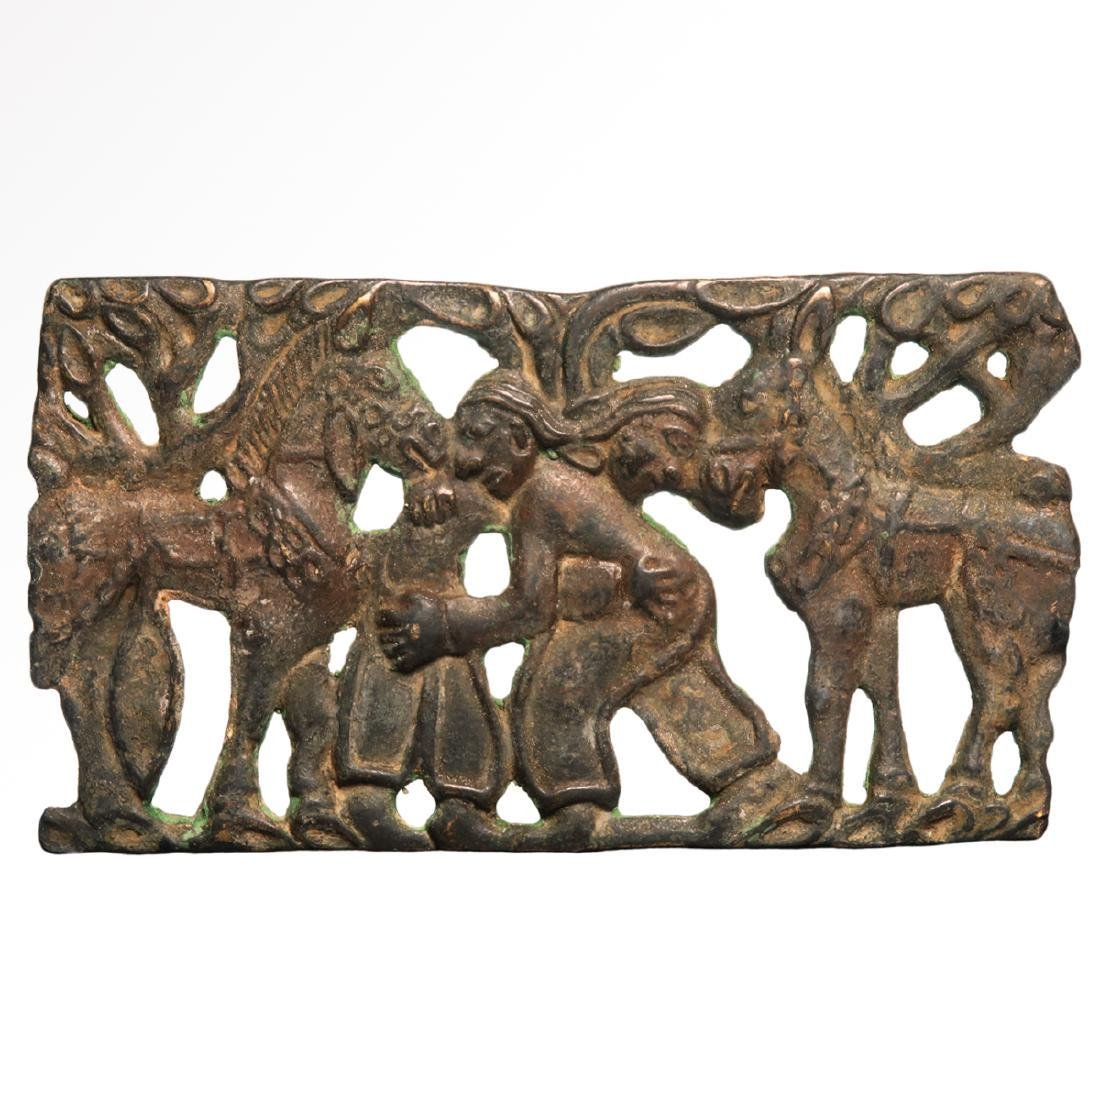 Scythian Bronze Plaque of Two Wrestling Figures and